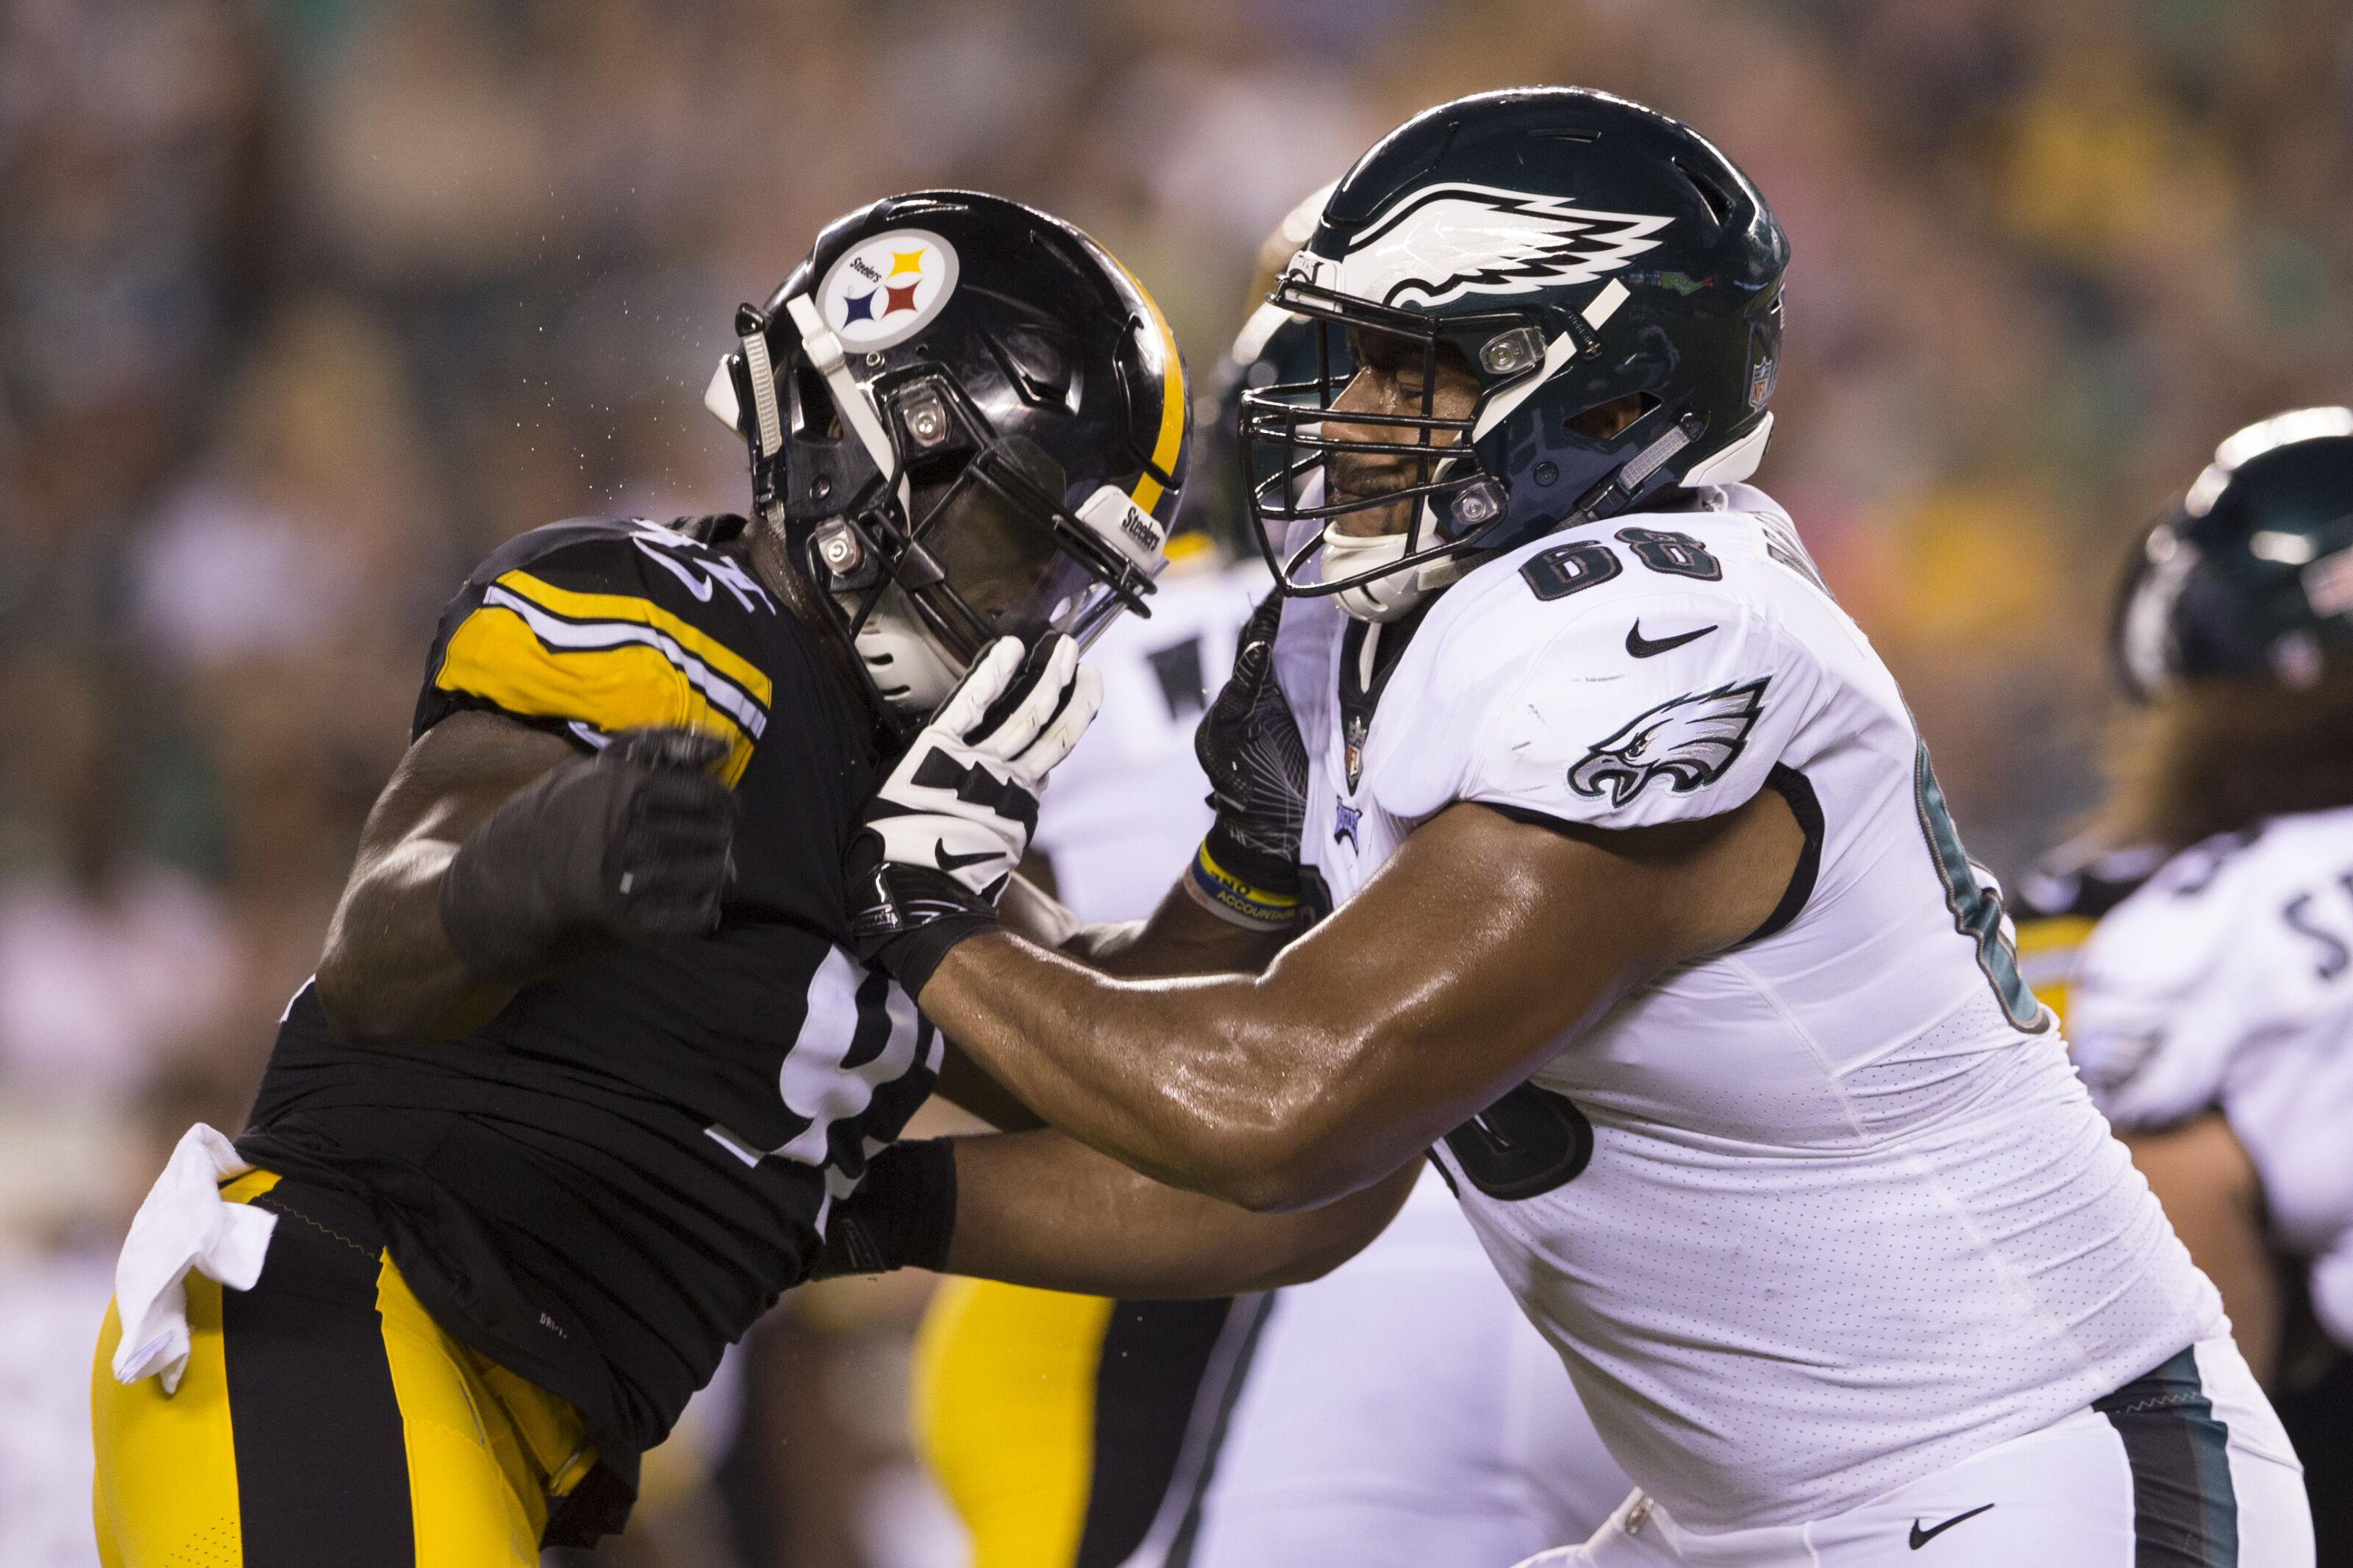 100% authentic d5671 d212b The Steelers may be higher on Ola Adeniyi than we think